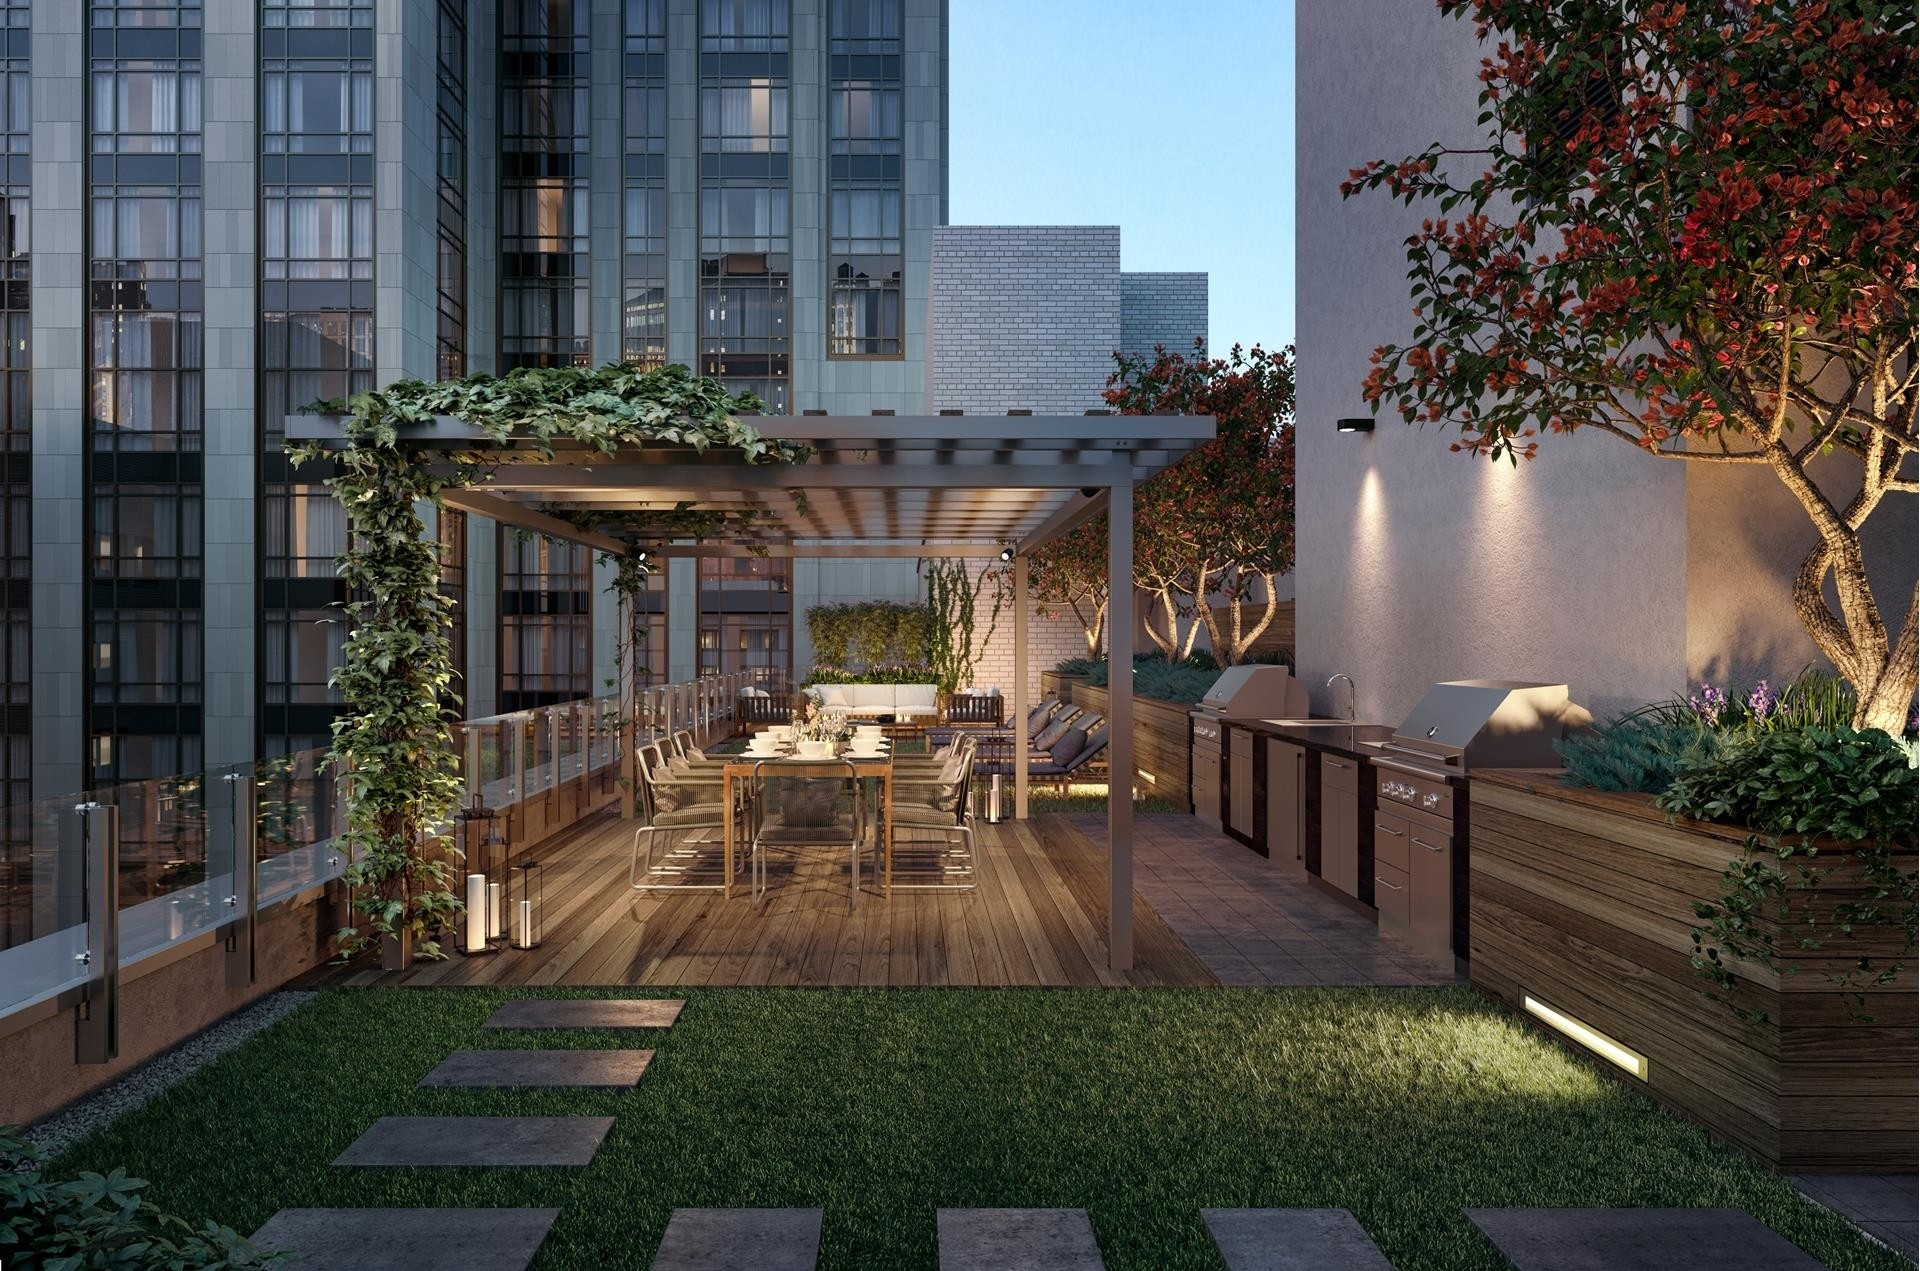 16. Condominiums for Sale at Gramercy Square, 215 East 19th St, 17A Gramercy Park, New York, NY 10003